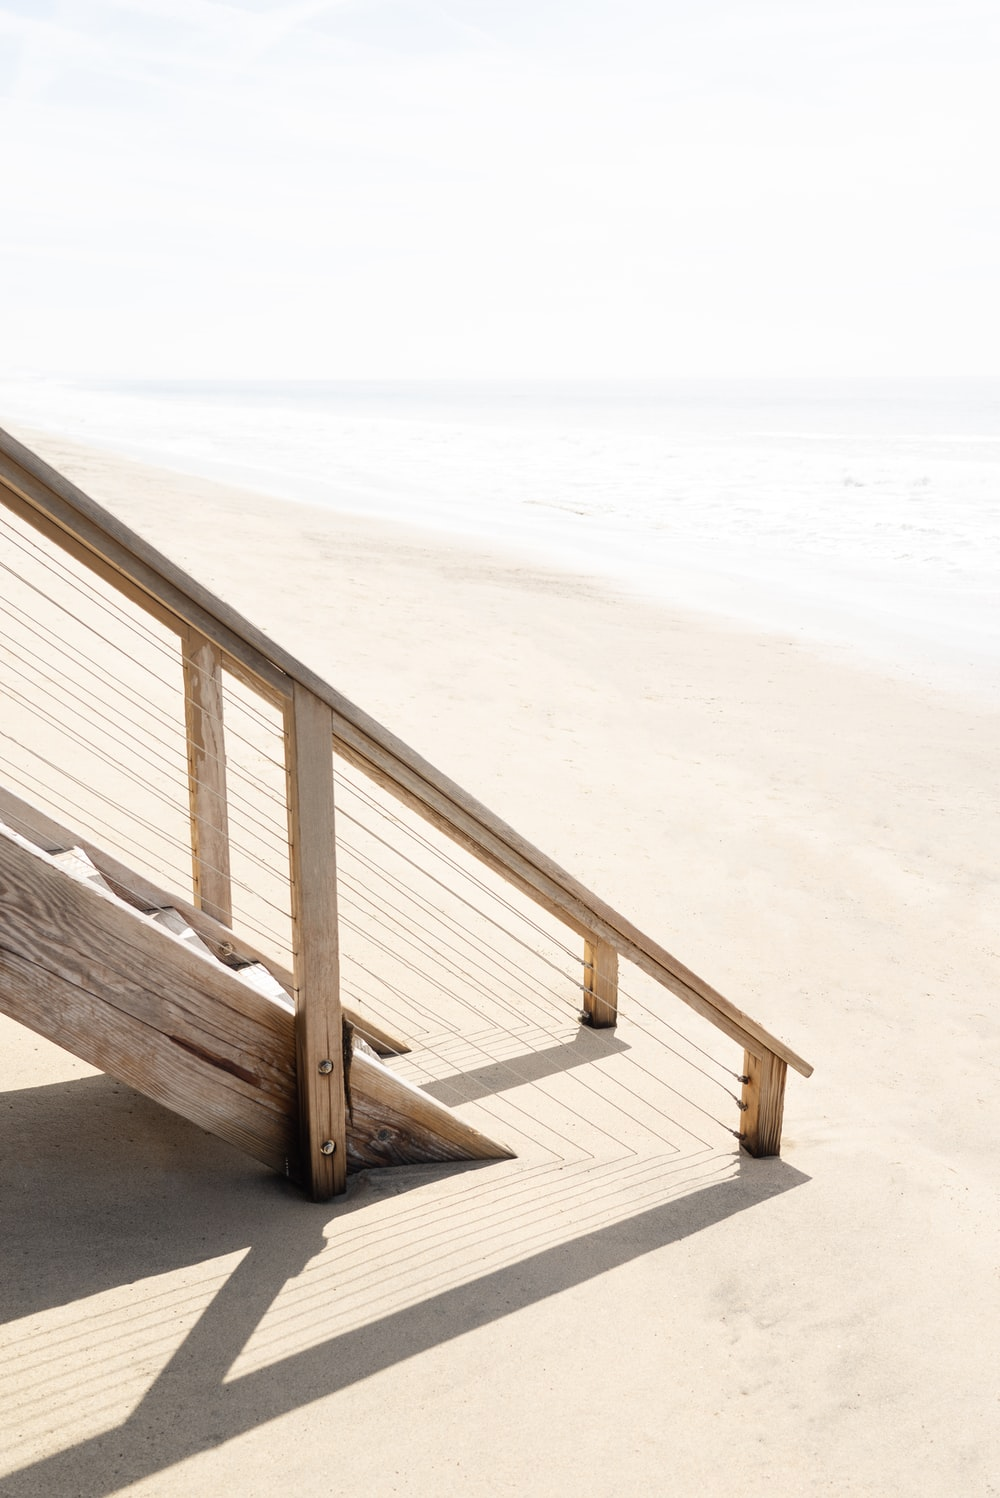 brown wooden staircase on white sand beach during daytime